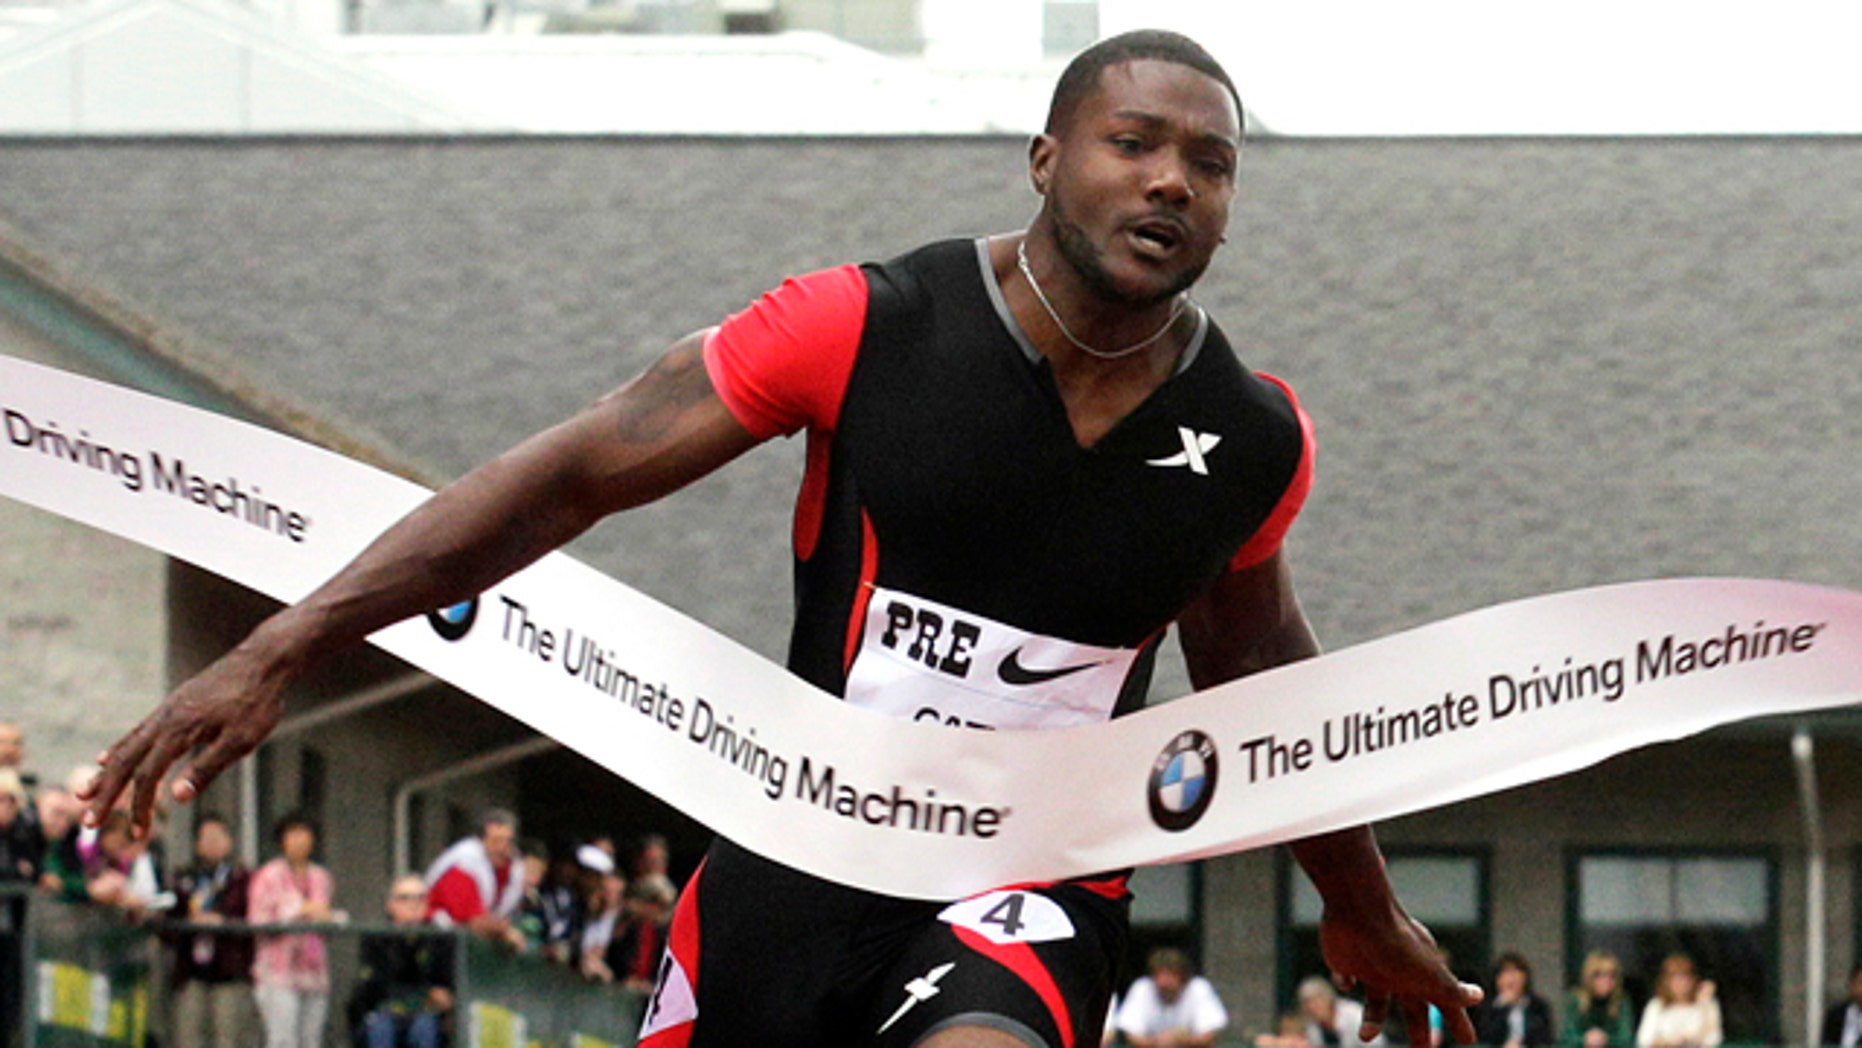 June 2, 2012: United States Justin Gatlin winning the 100-meter event at the Prefontaine Classic athletics meet in Eugene, Ore.